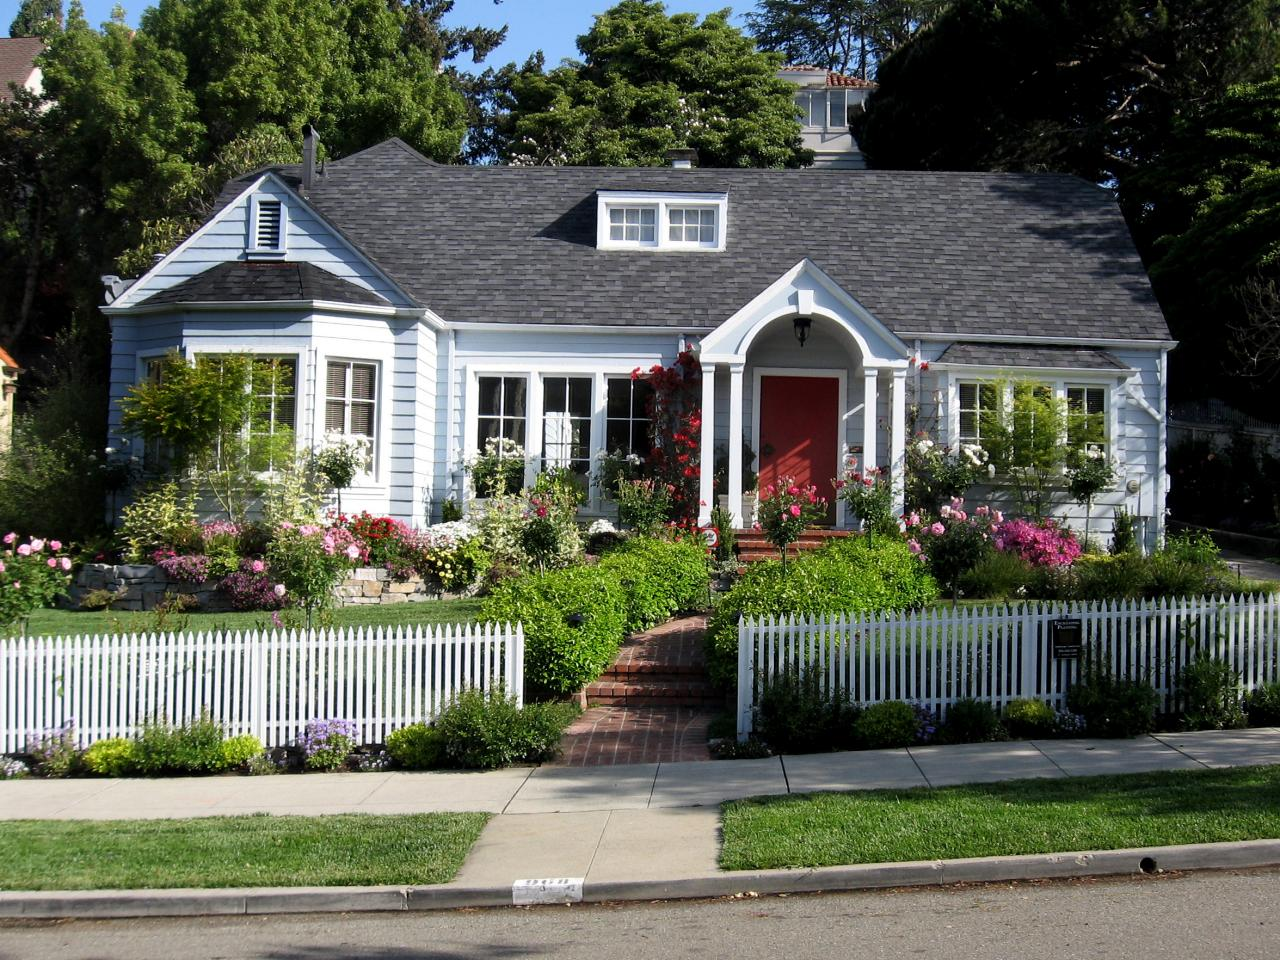 Blooming-yard-with-a-white-picket-fence